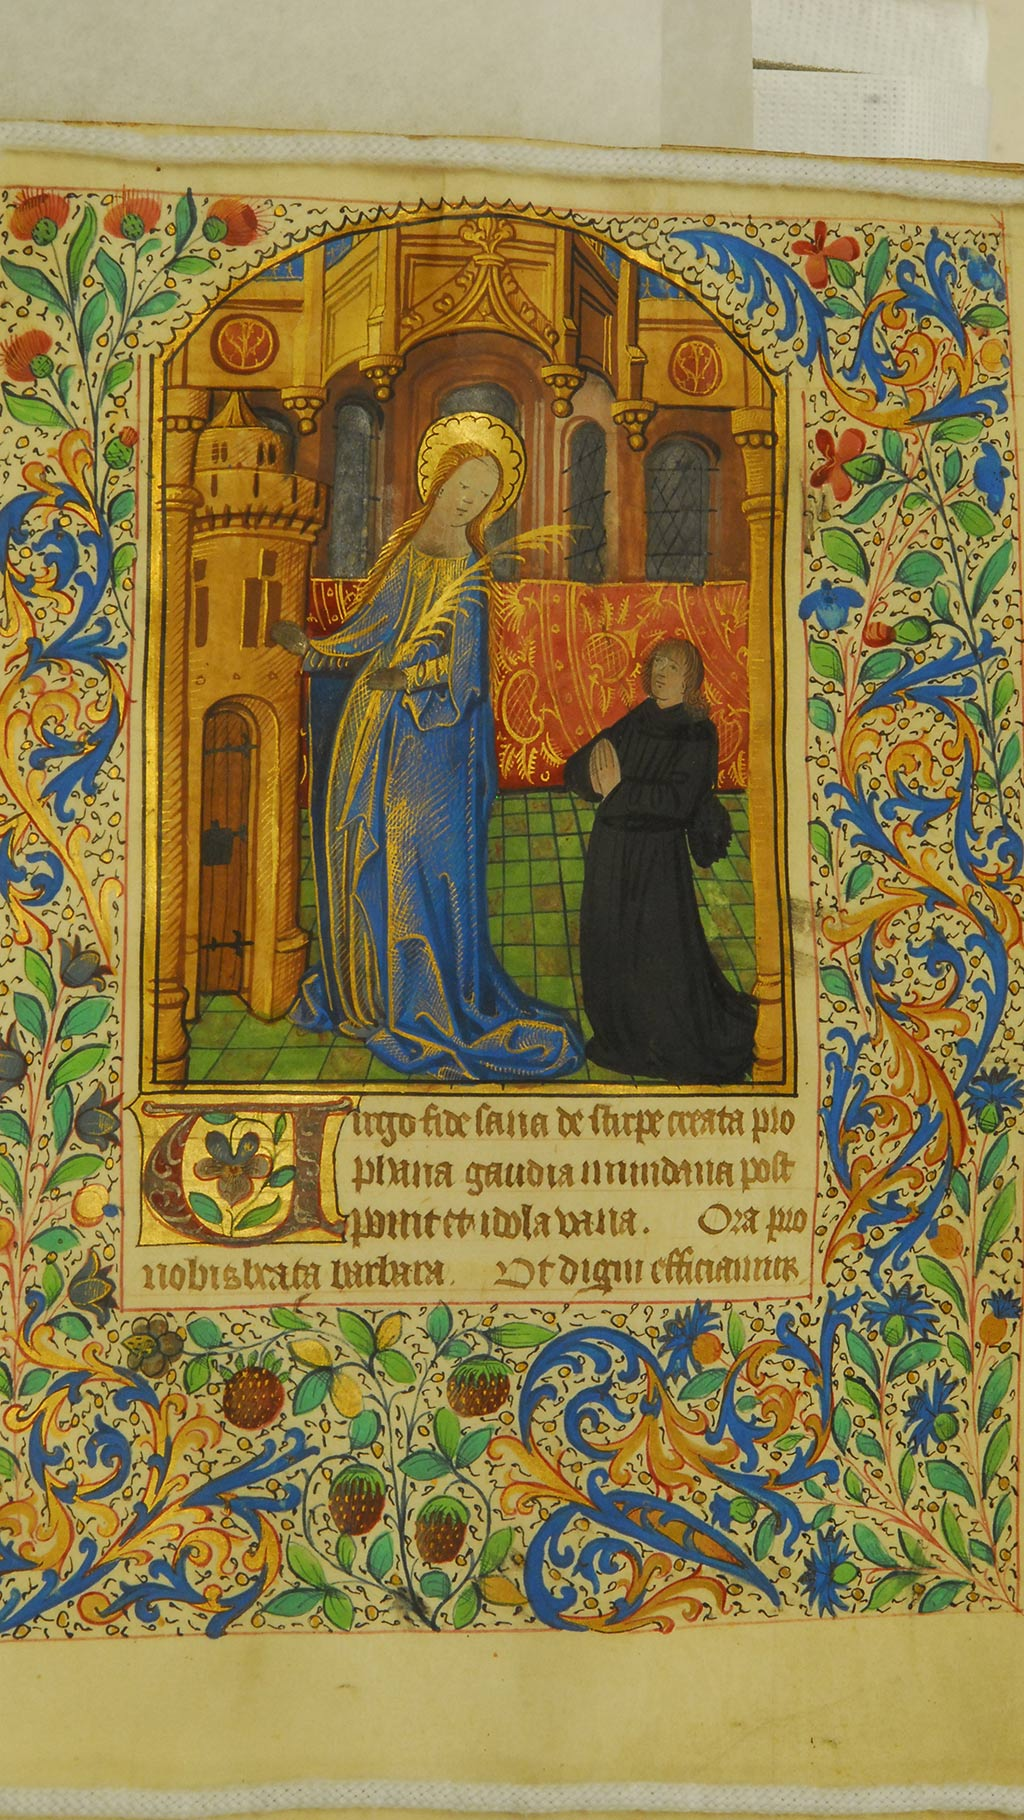 inside page of the manuscript, Virgin Mary, a man in black